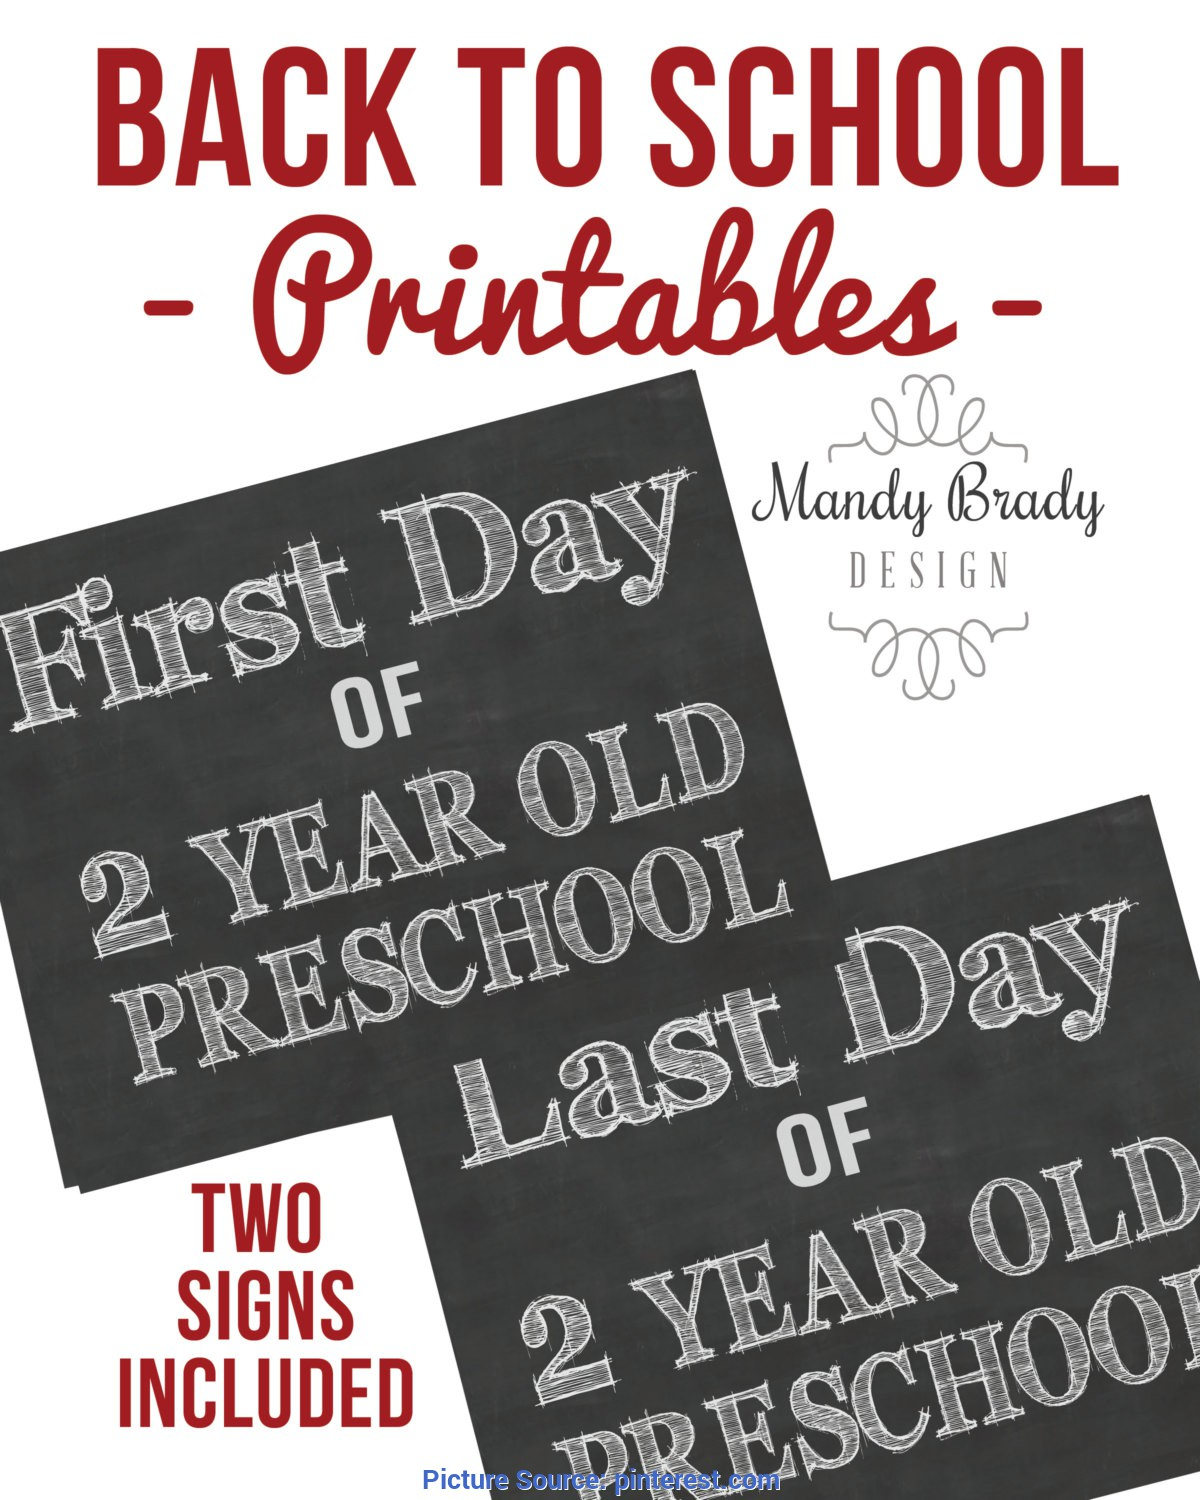 Simple Free Preschool For 2 Year Olds Two Year Old Preschool Chalkboard Sign, 2 Year Old Preschoo